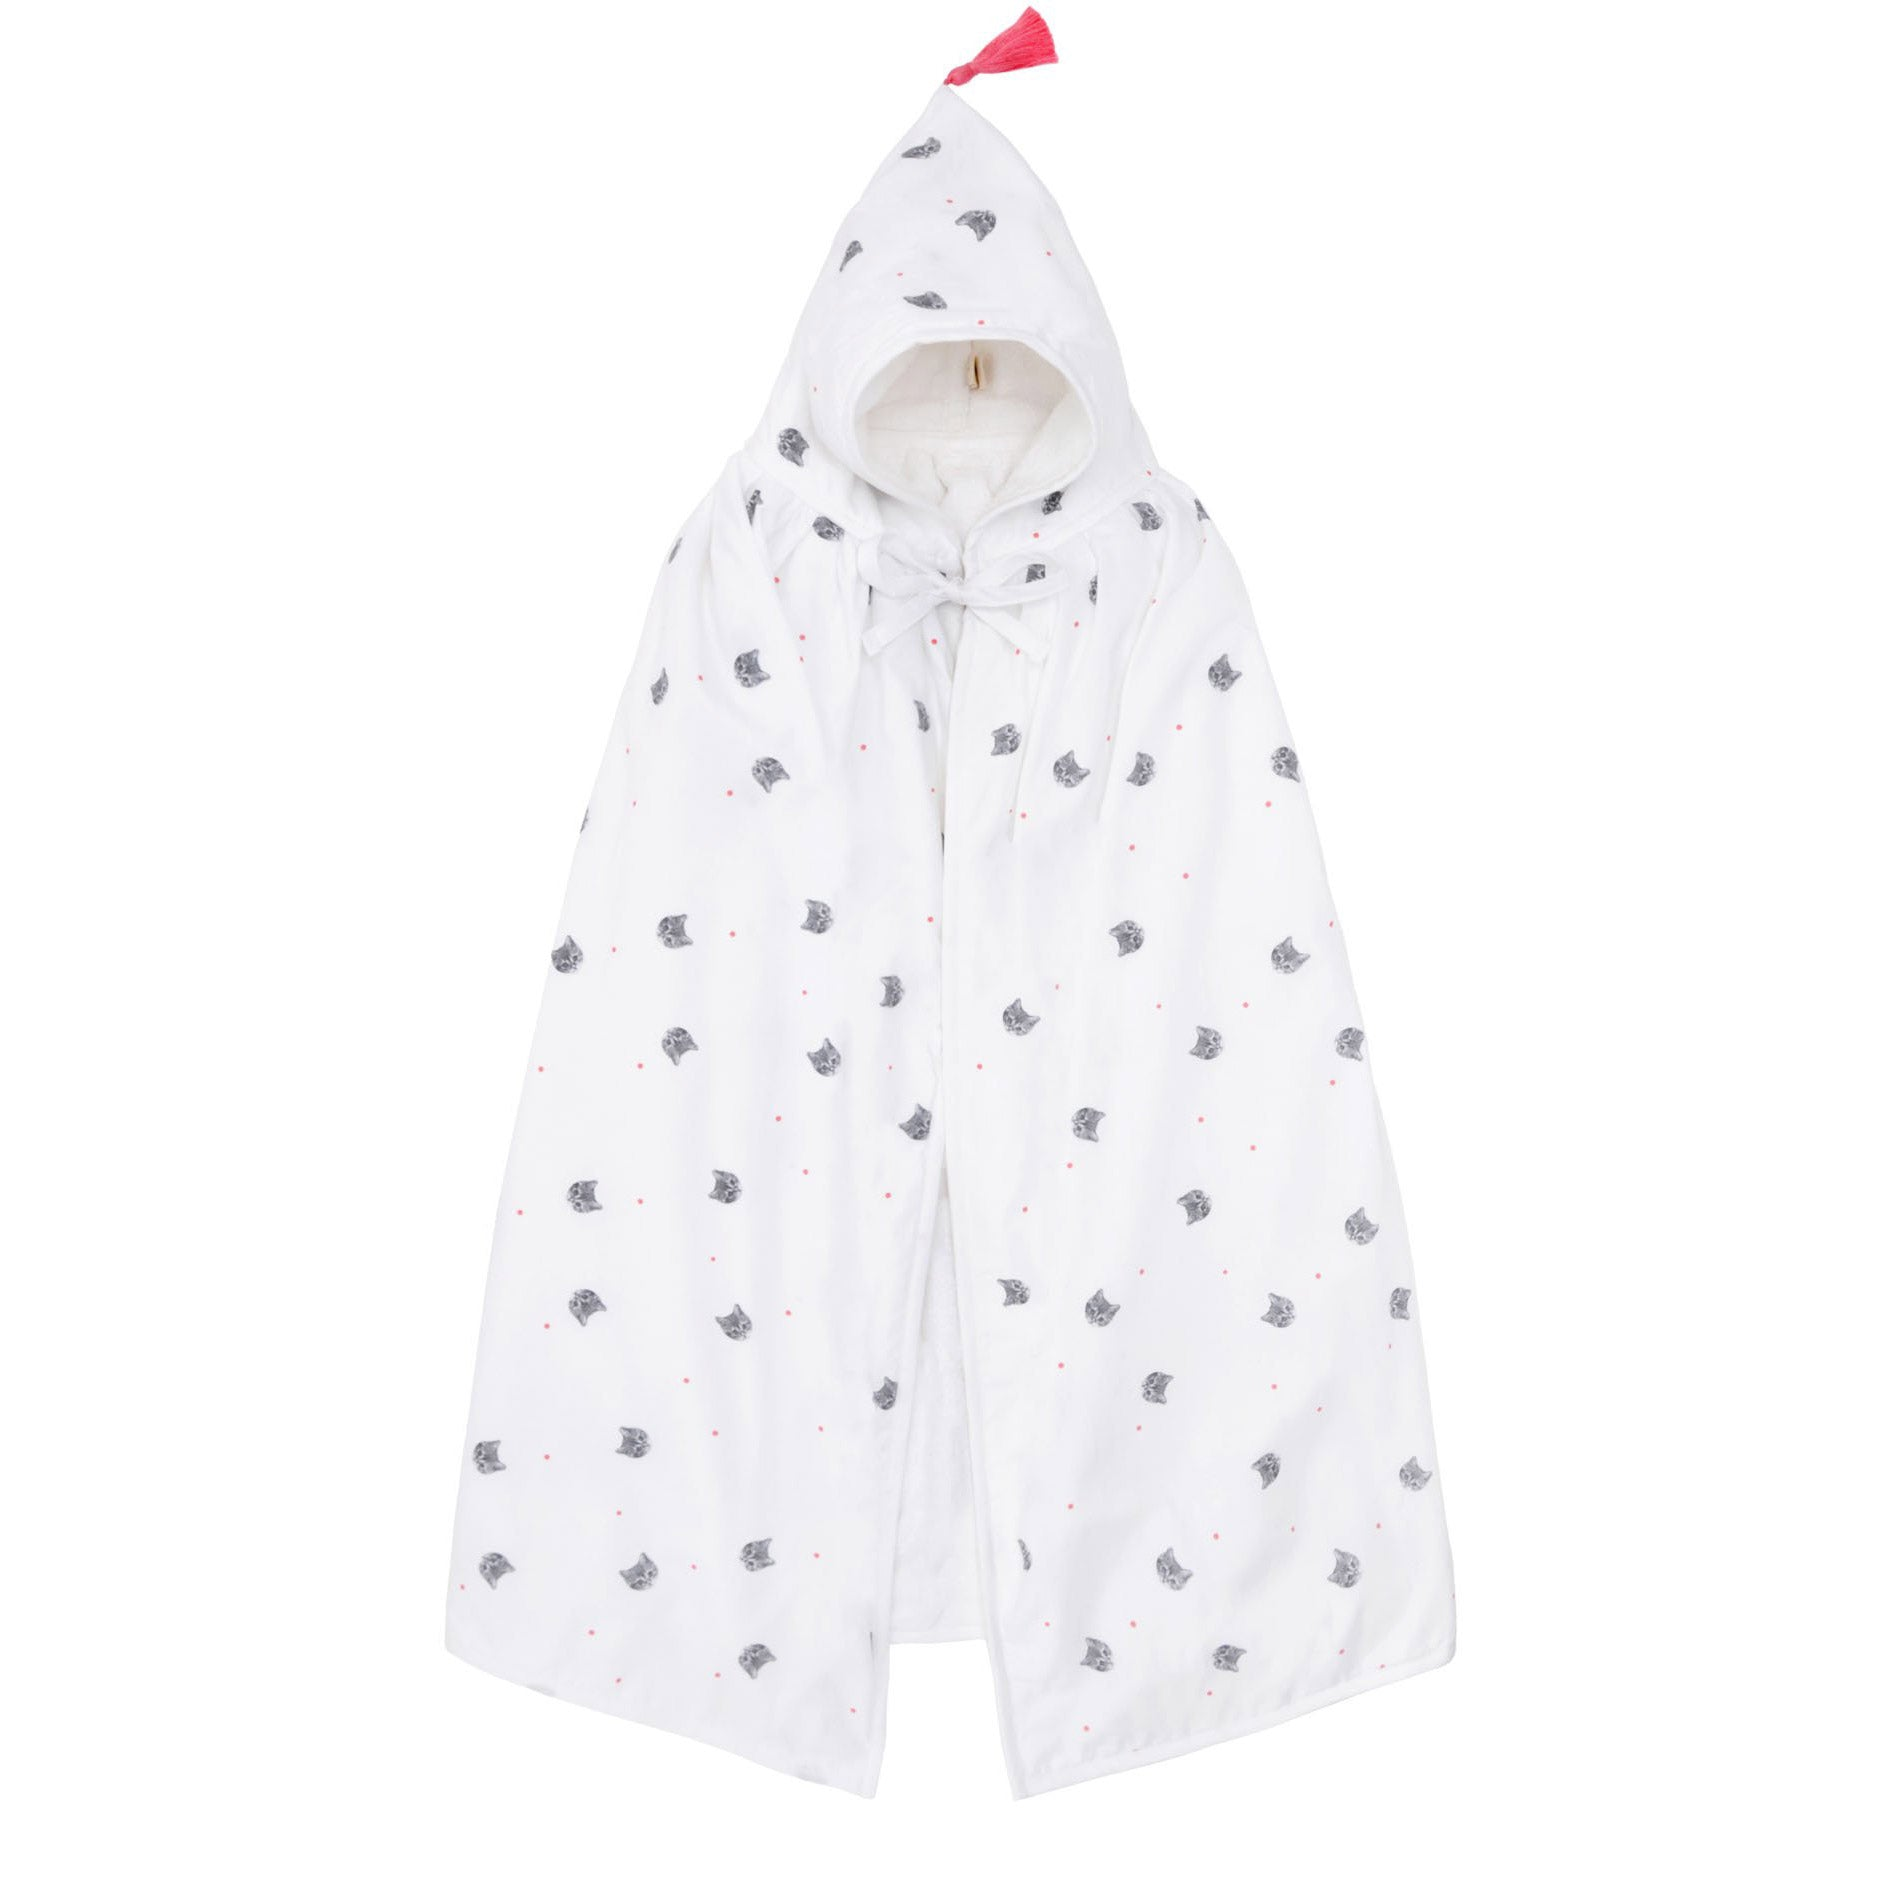 HOODED MELISSA BATH CAPE - MEDIUM